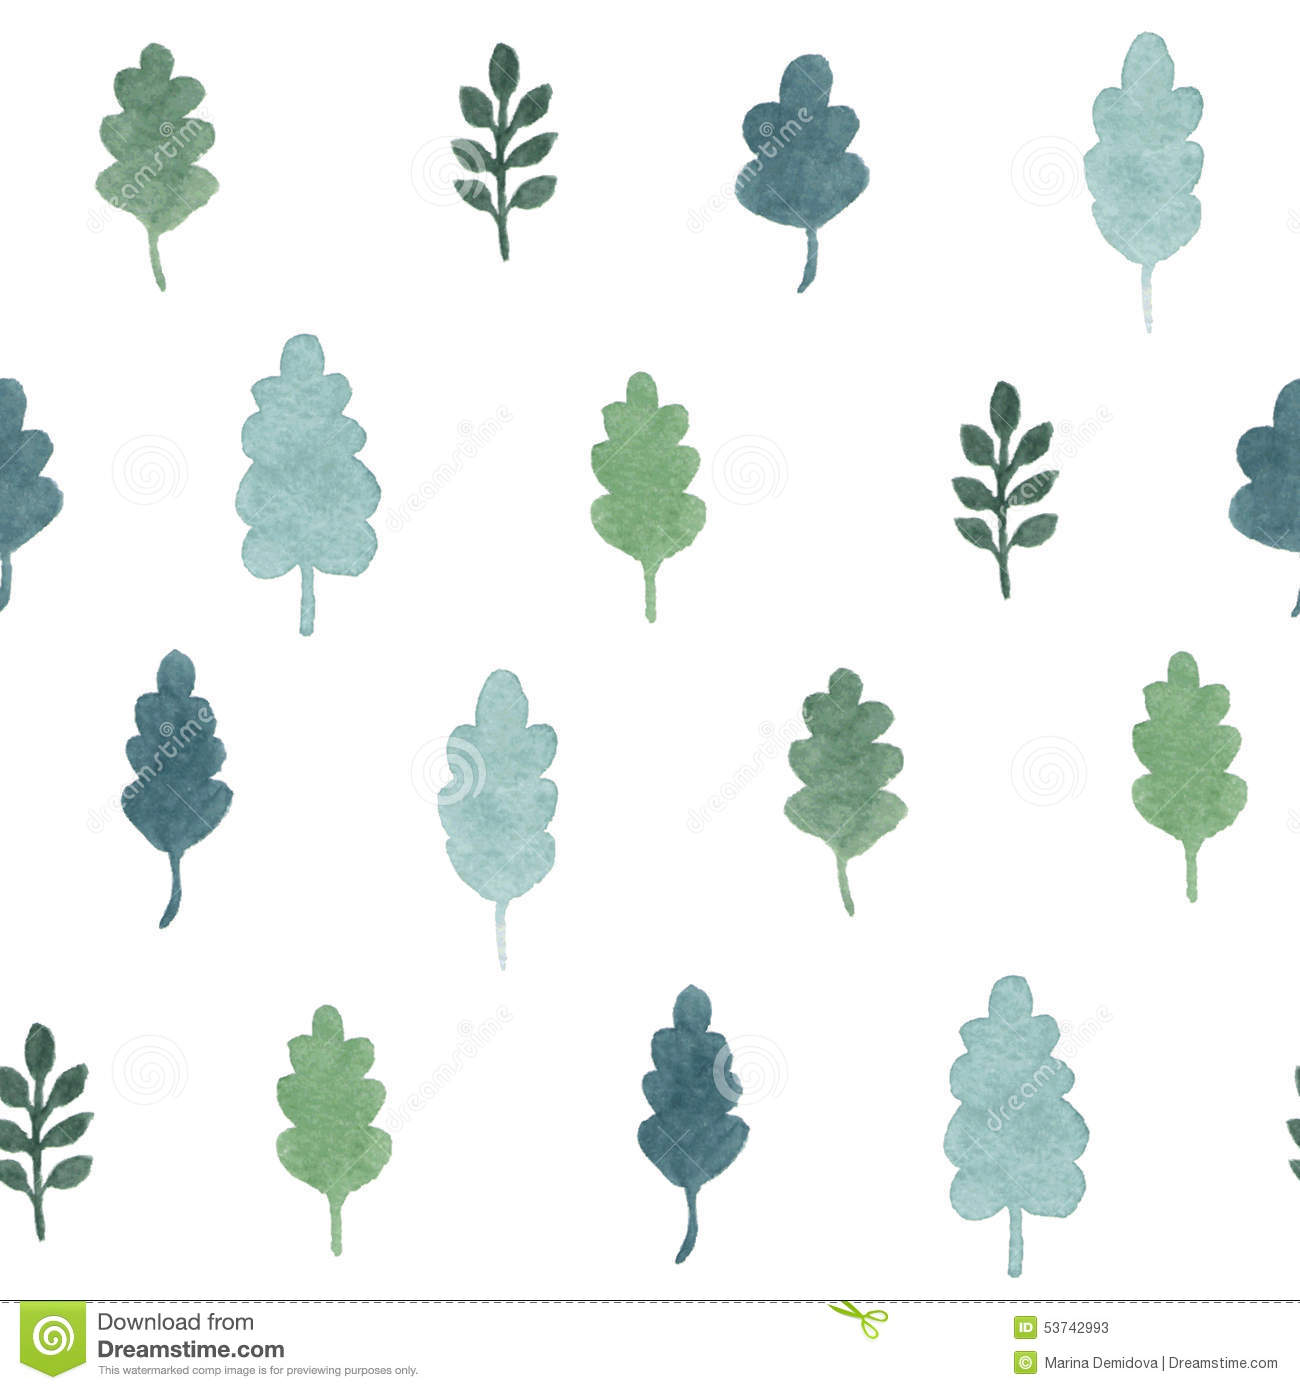 Seamless pattern with watercolor hand draw leaves and branches